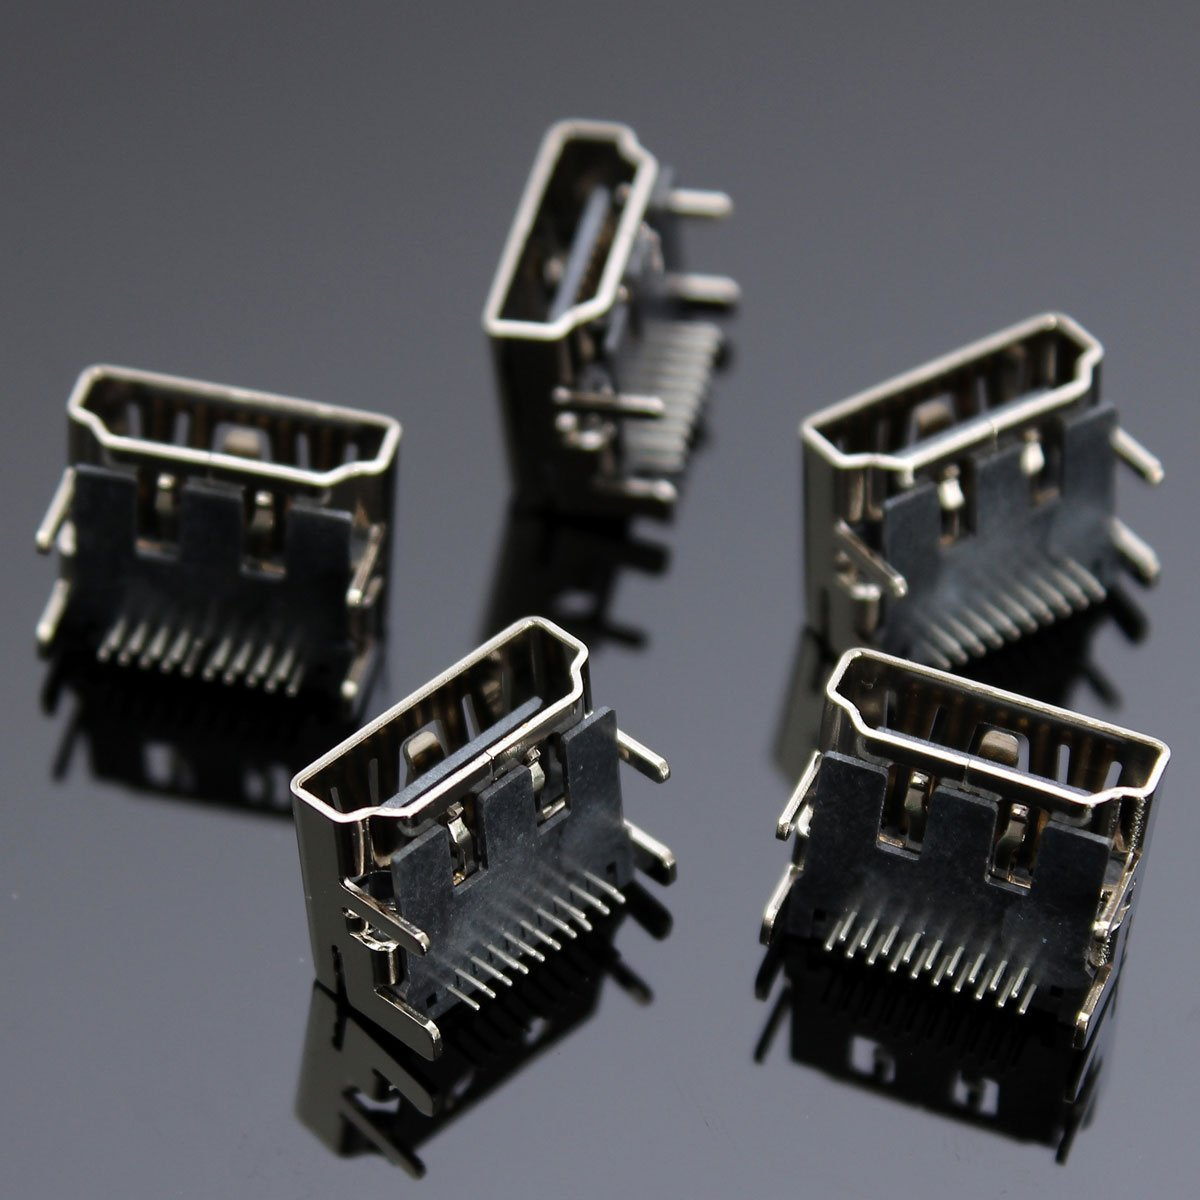 5pcs 19 Pin HDMI Female DIP Jack Socket Connectors 2Rows 90 Degree / 5pcs 19 Pin HDMI Female DIP Jack Socket Connectors 4Legs 2Rows 90 Degree . . Specifications: . HDMI Series . . Type: DI